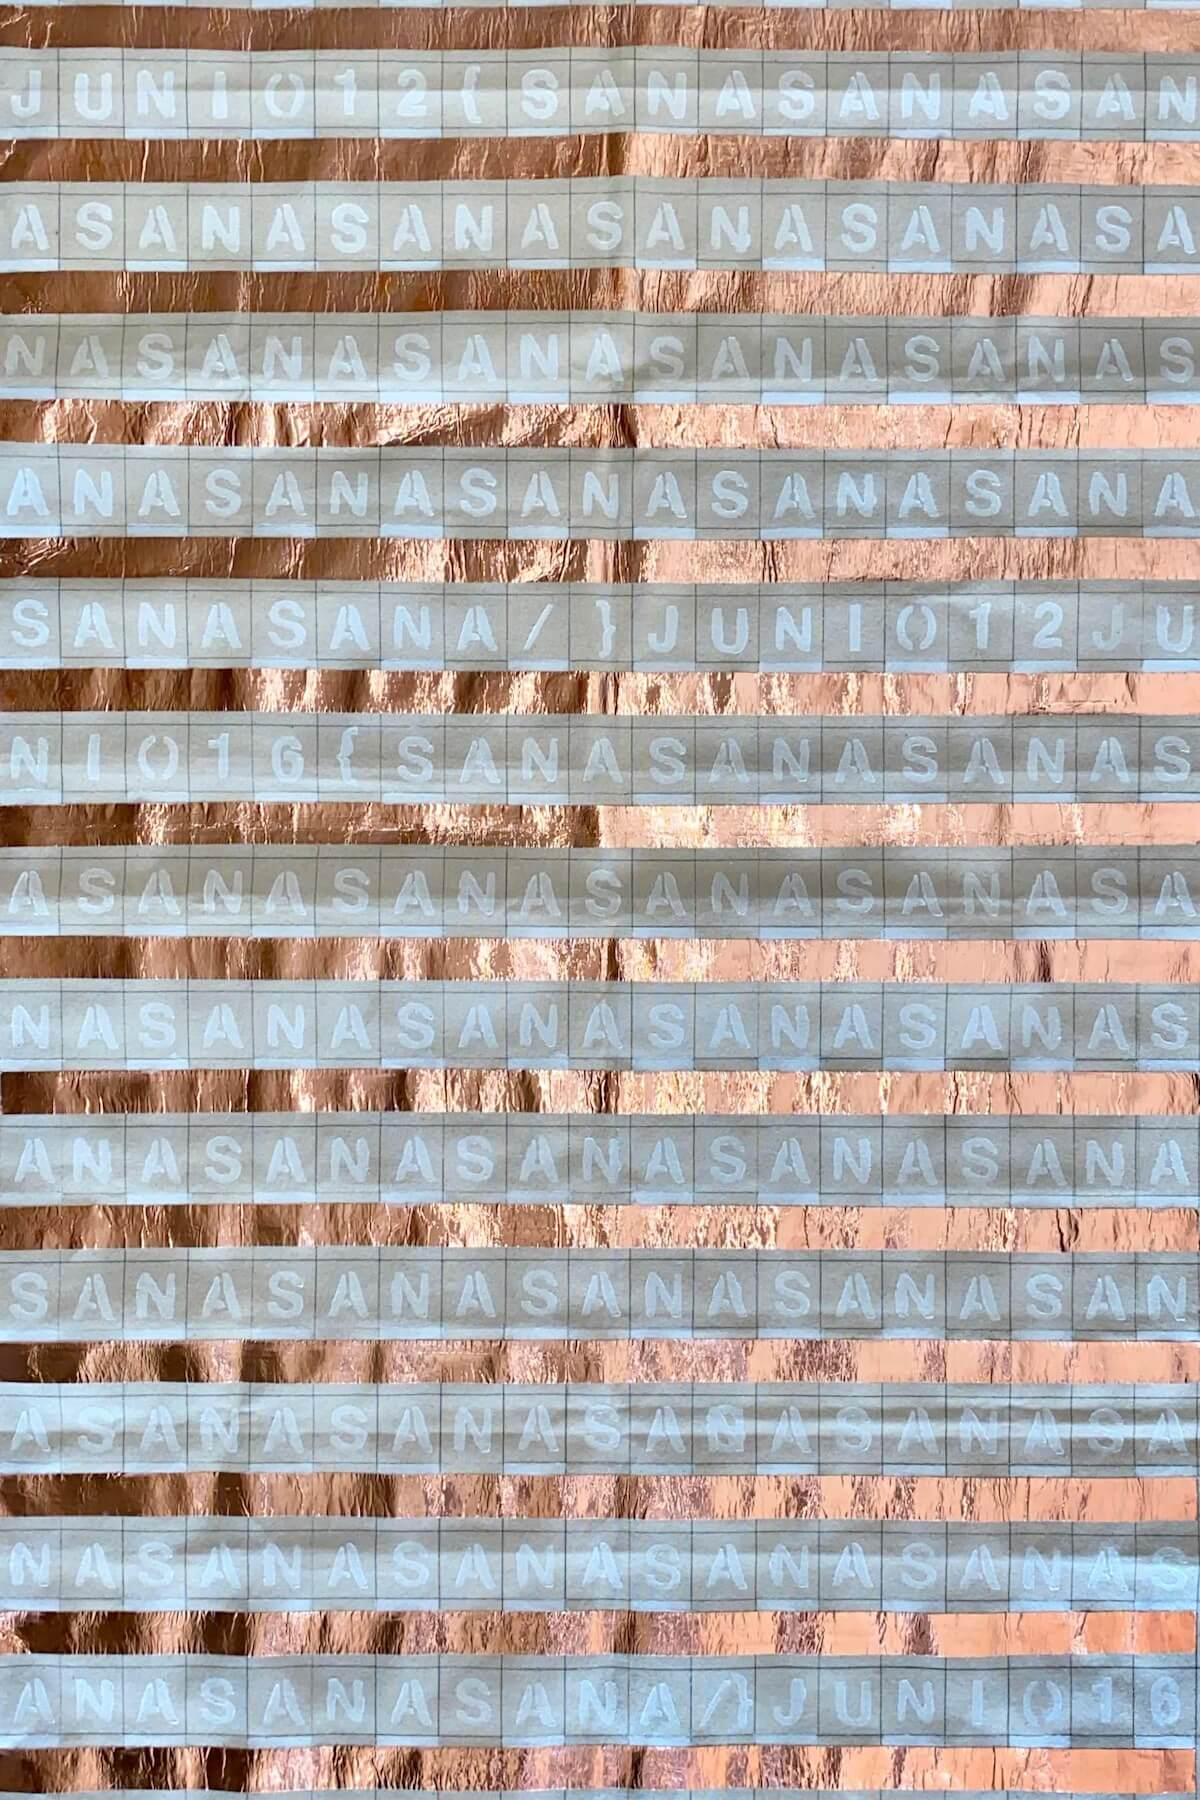 Brown paper divided into a grid. Every other row is striped with shiny copper foil. Between those stripes, each square of the grid contains a letter printed in white forming a continuous stream of letters reading 'ASANASANASANASANA'.